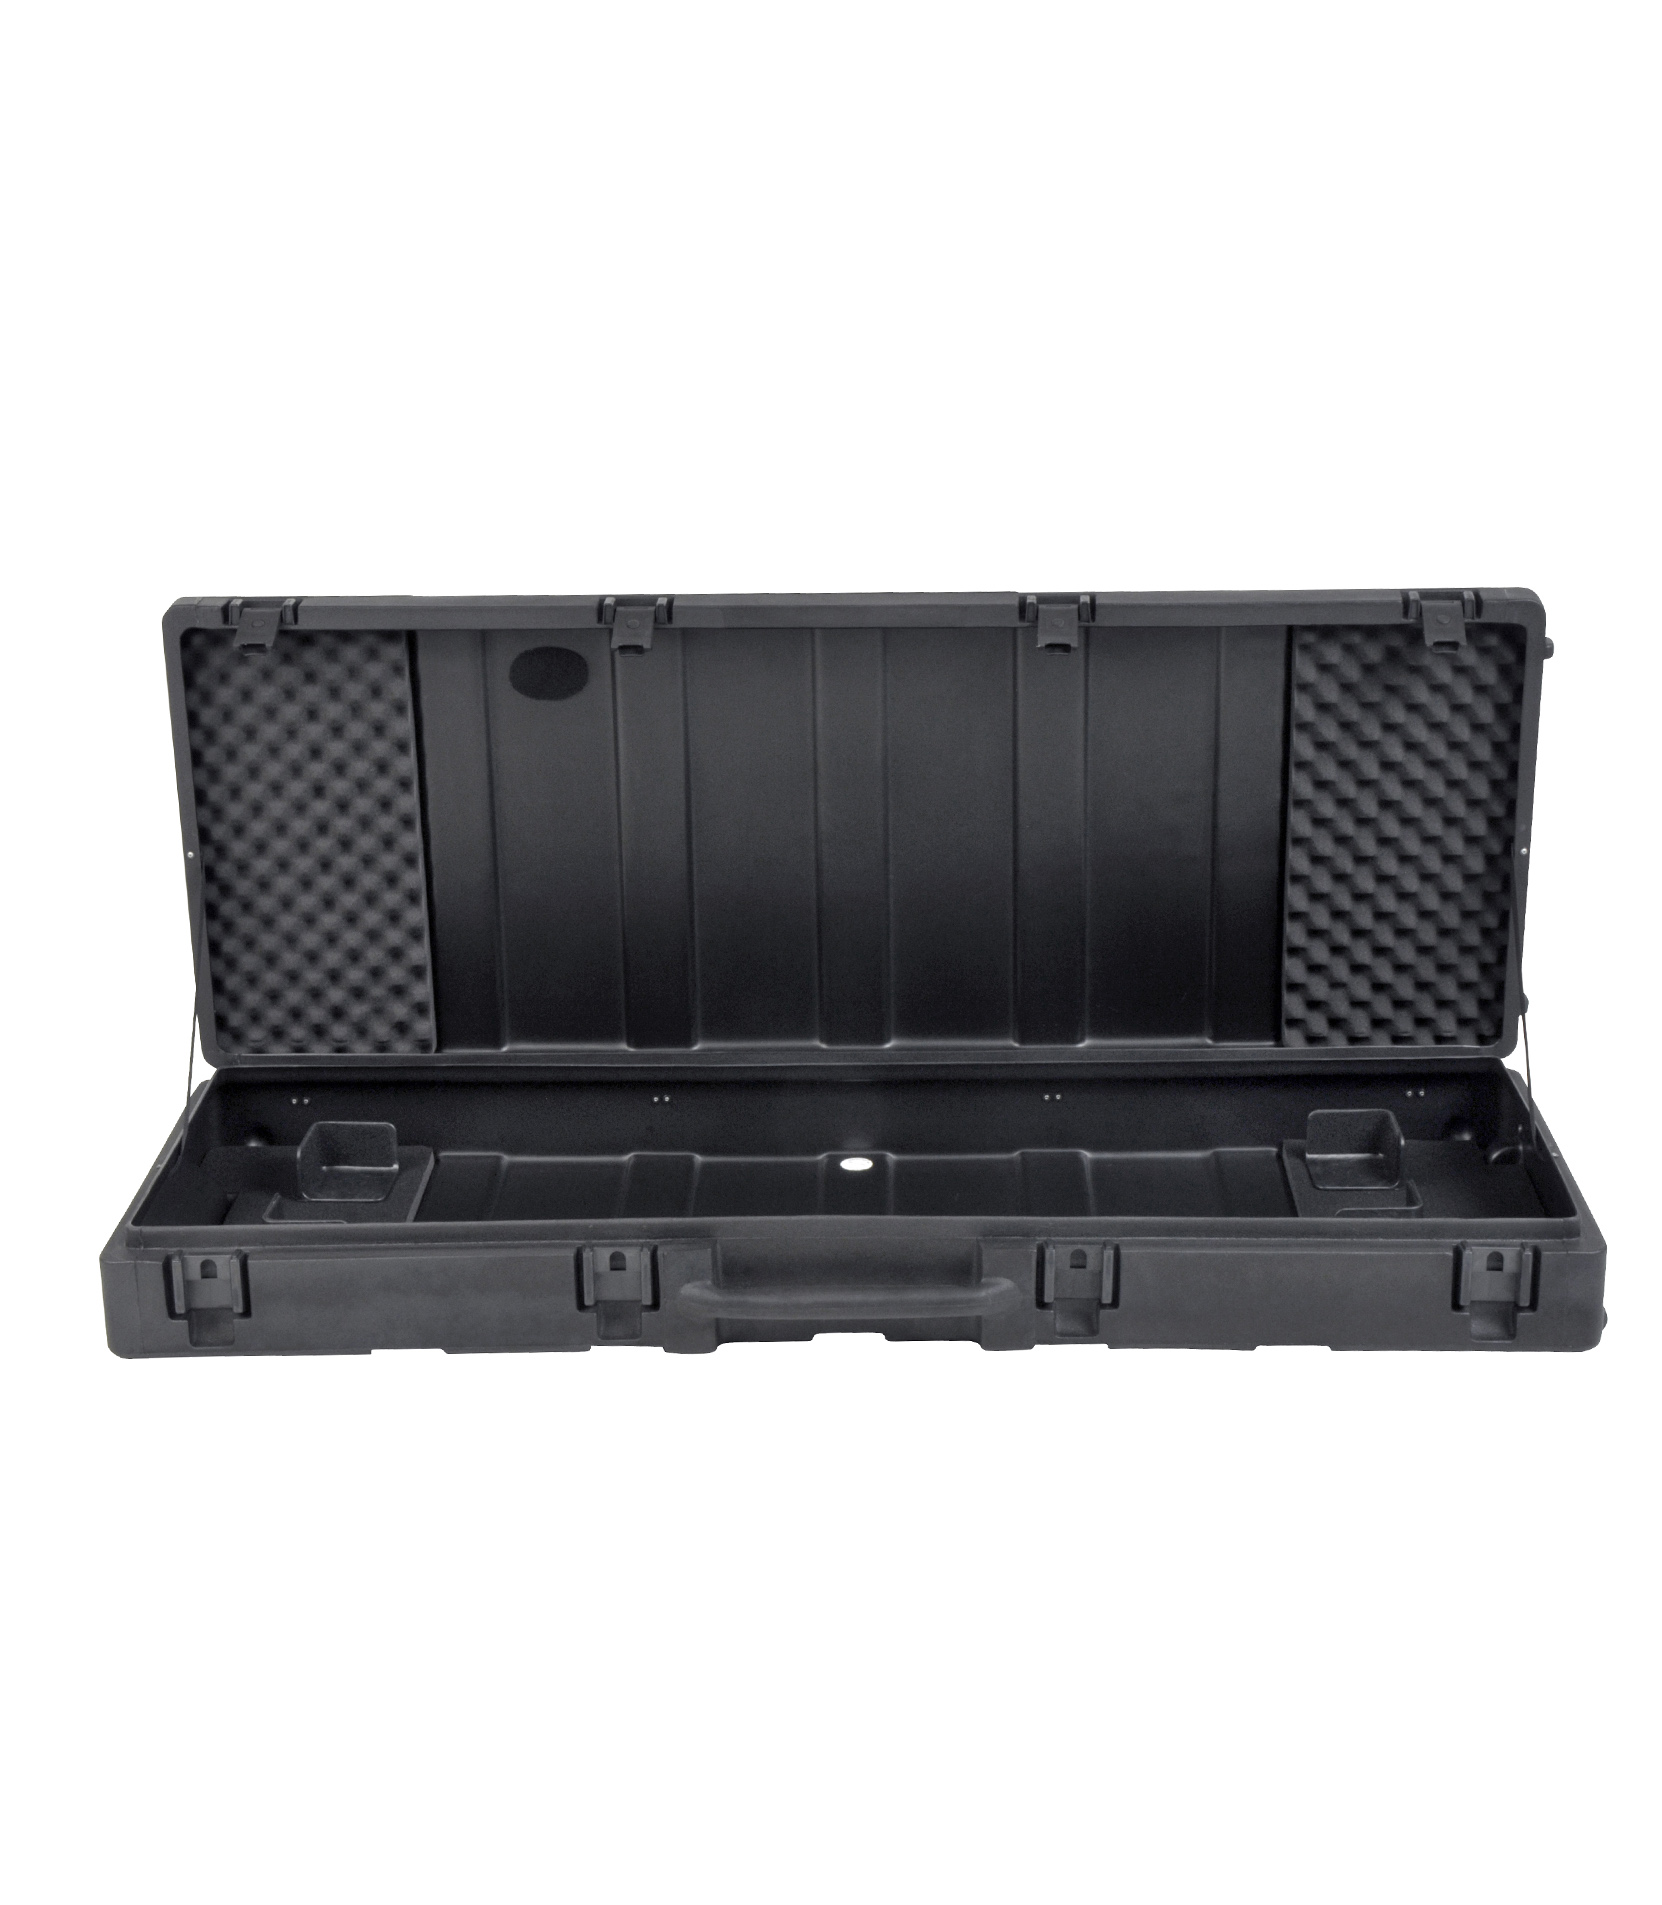 Melody House Musical Instruments Store - 1SKB R6020W 88 Note Roto Mold case w wheels